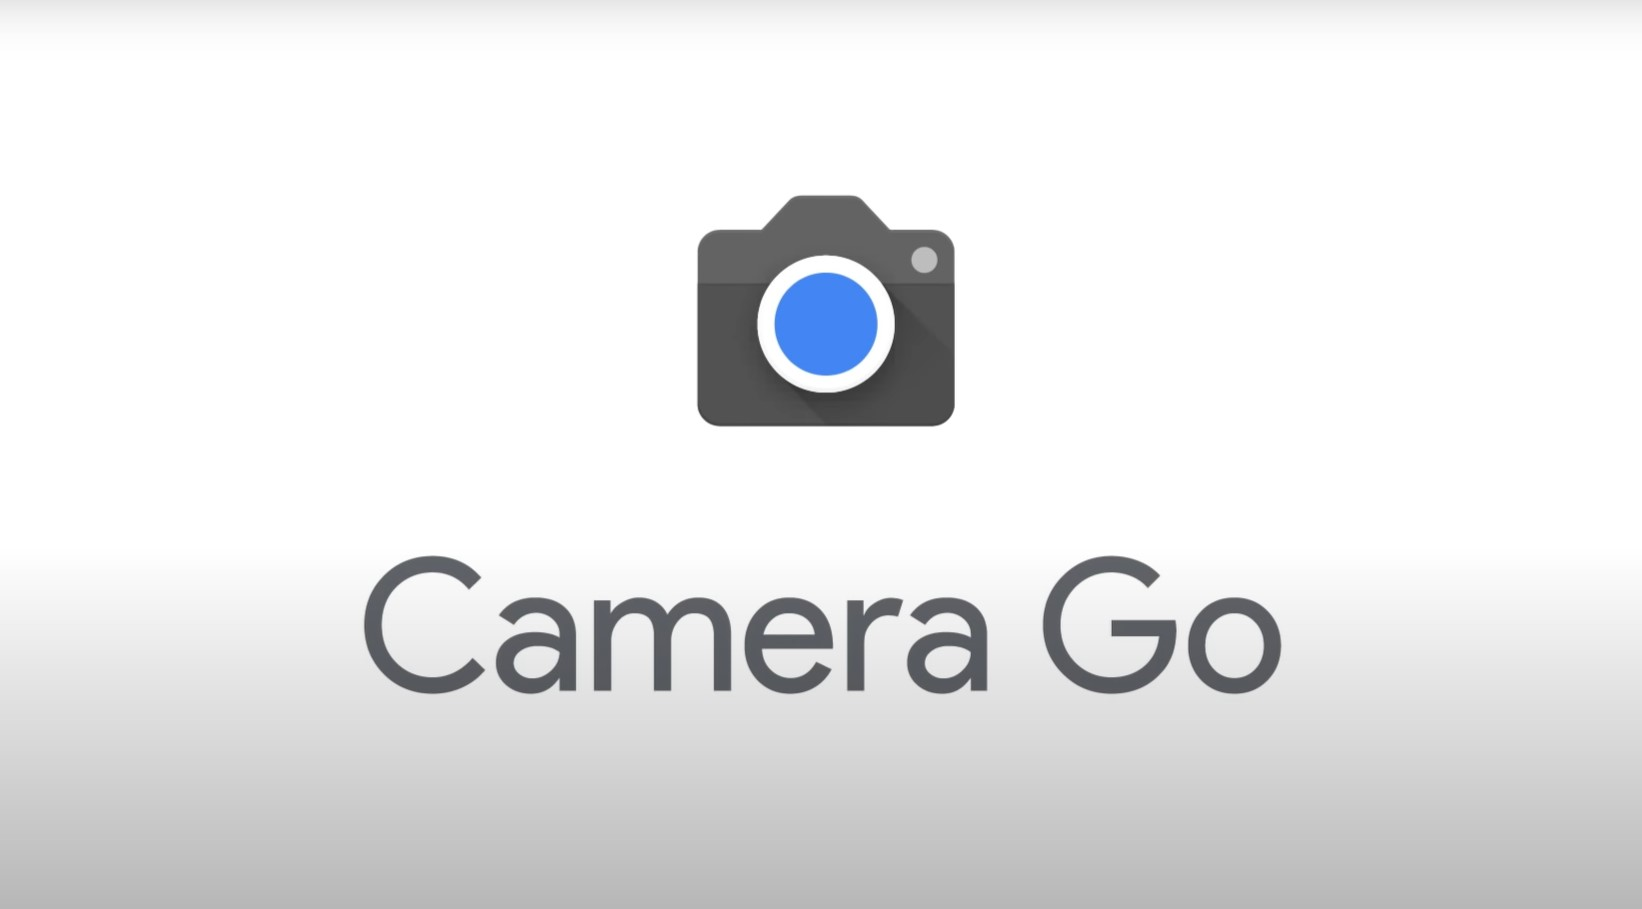 Google Camera Go on Android (Go edition) APK download